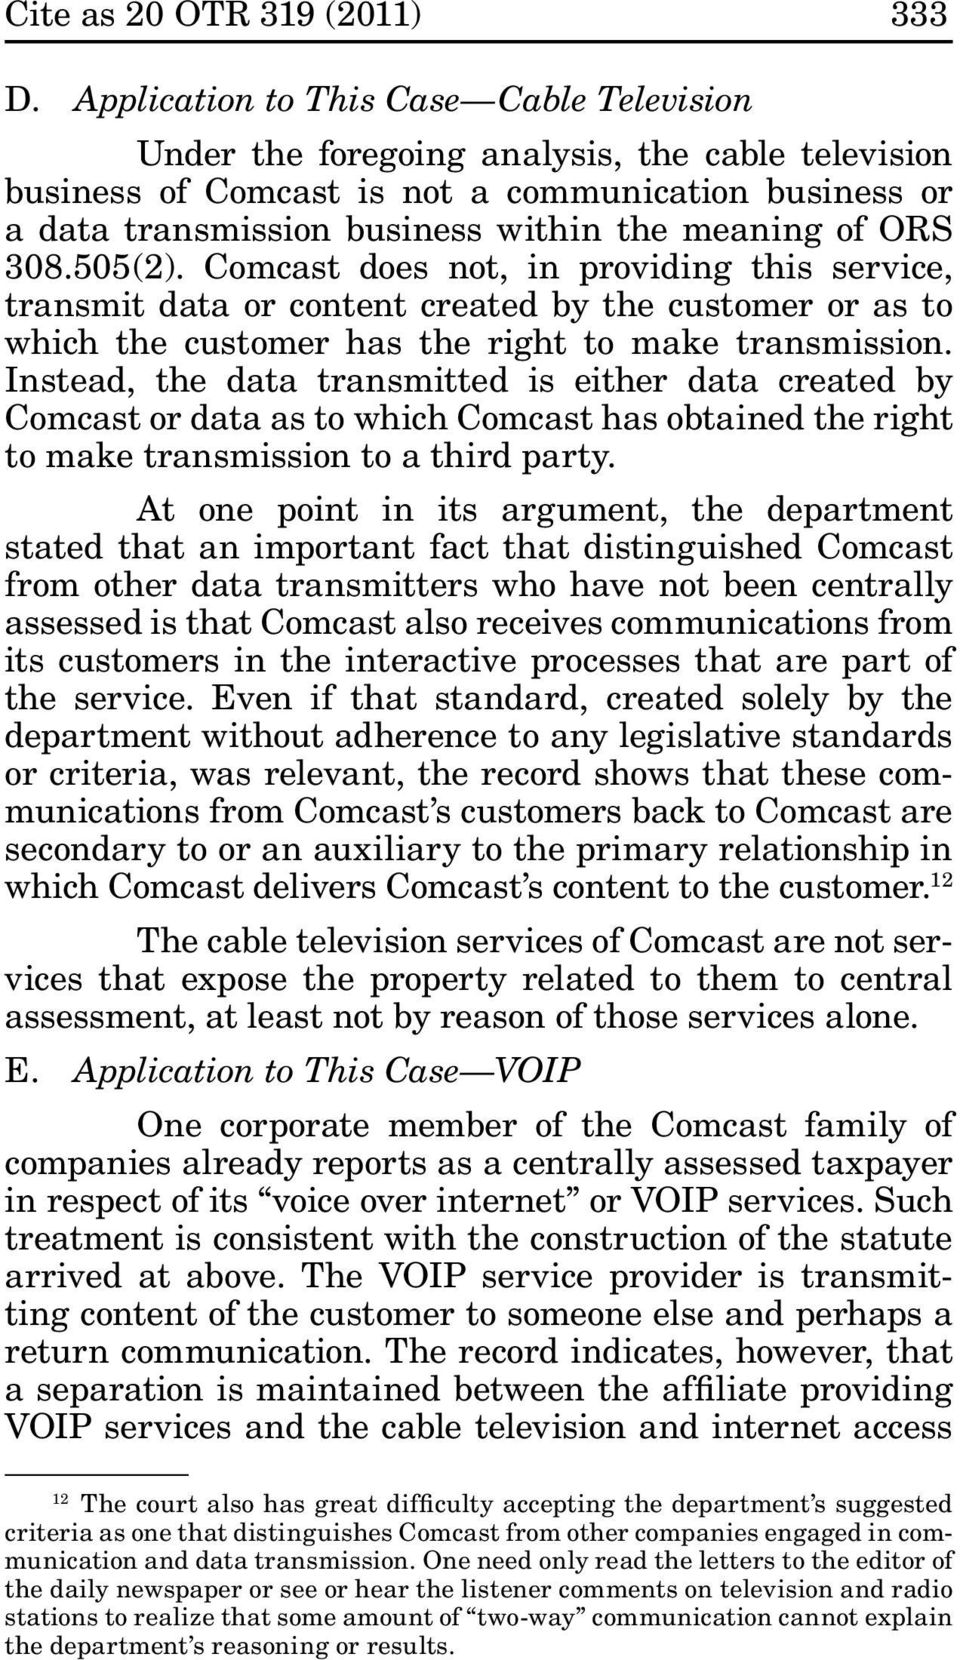 ORS 308.505(2). Comcast does not, in providing this service, transmit data or content created by the customer or as to which the customer has the right to make transmission.